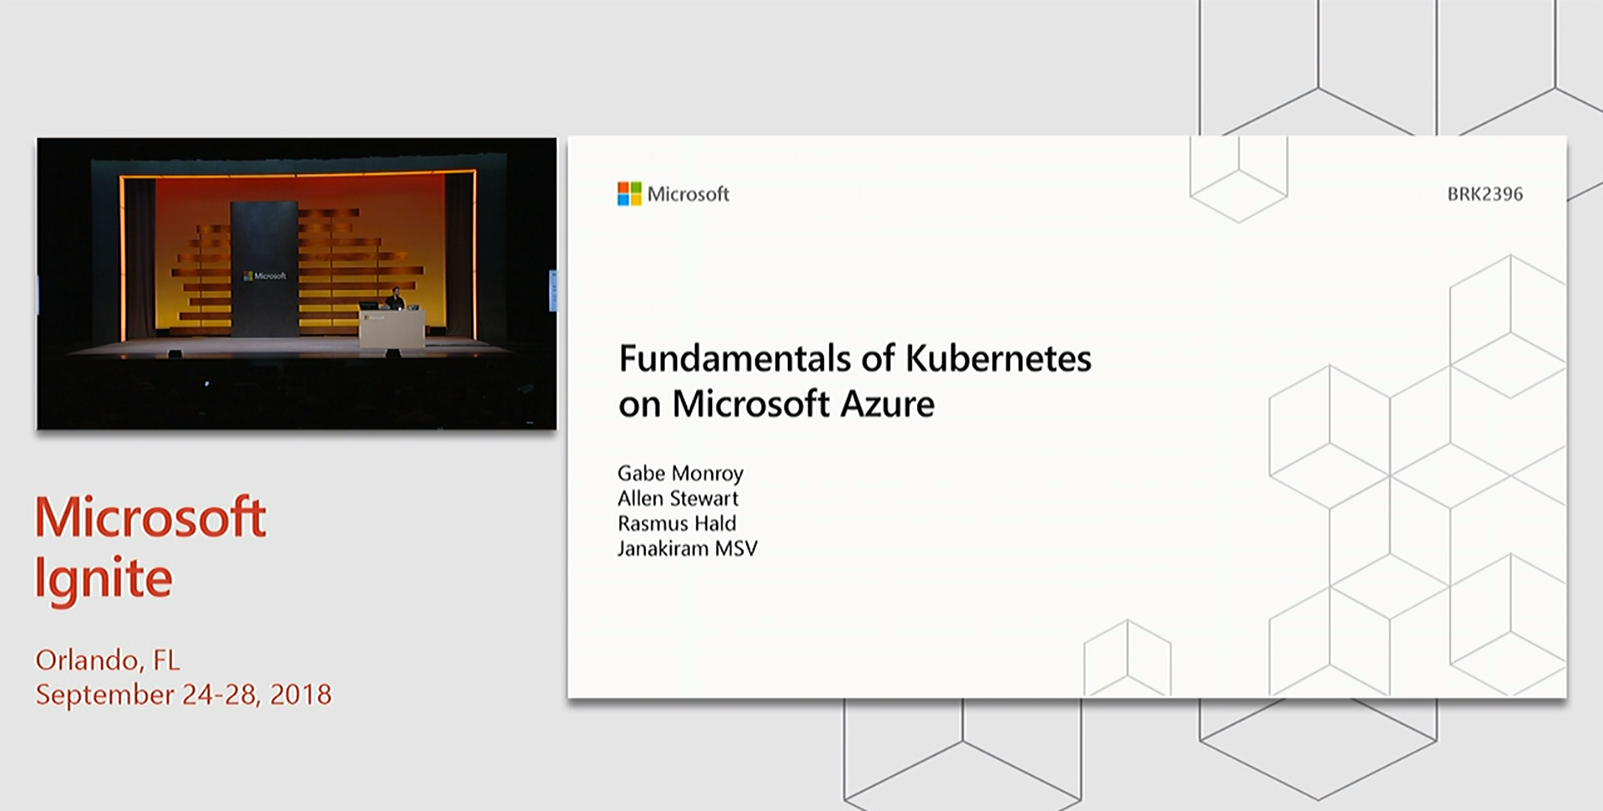 Fundamentals of Kubernetes on Microsoft Azure